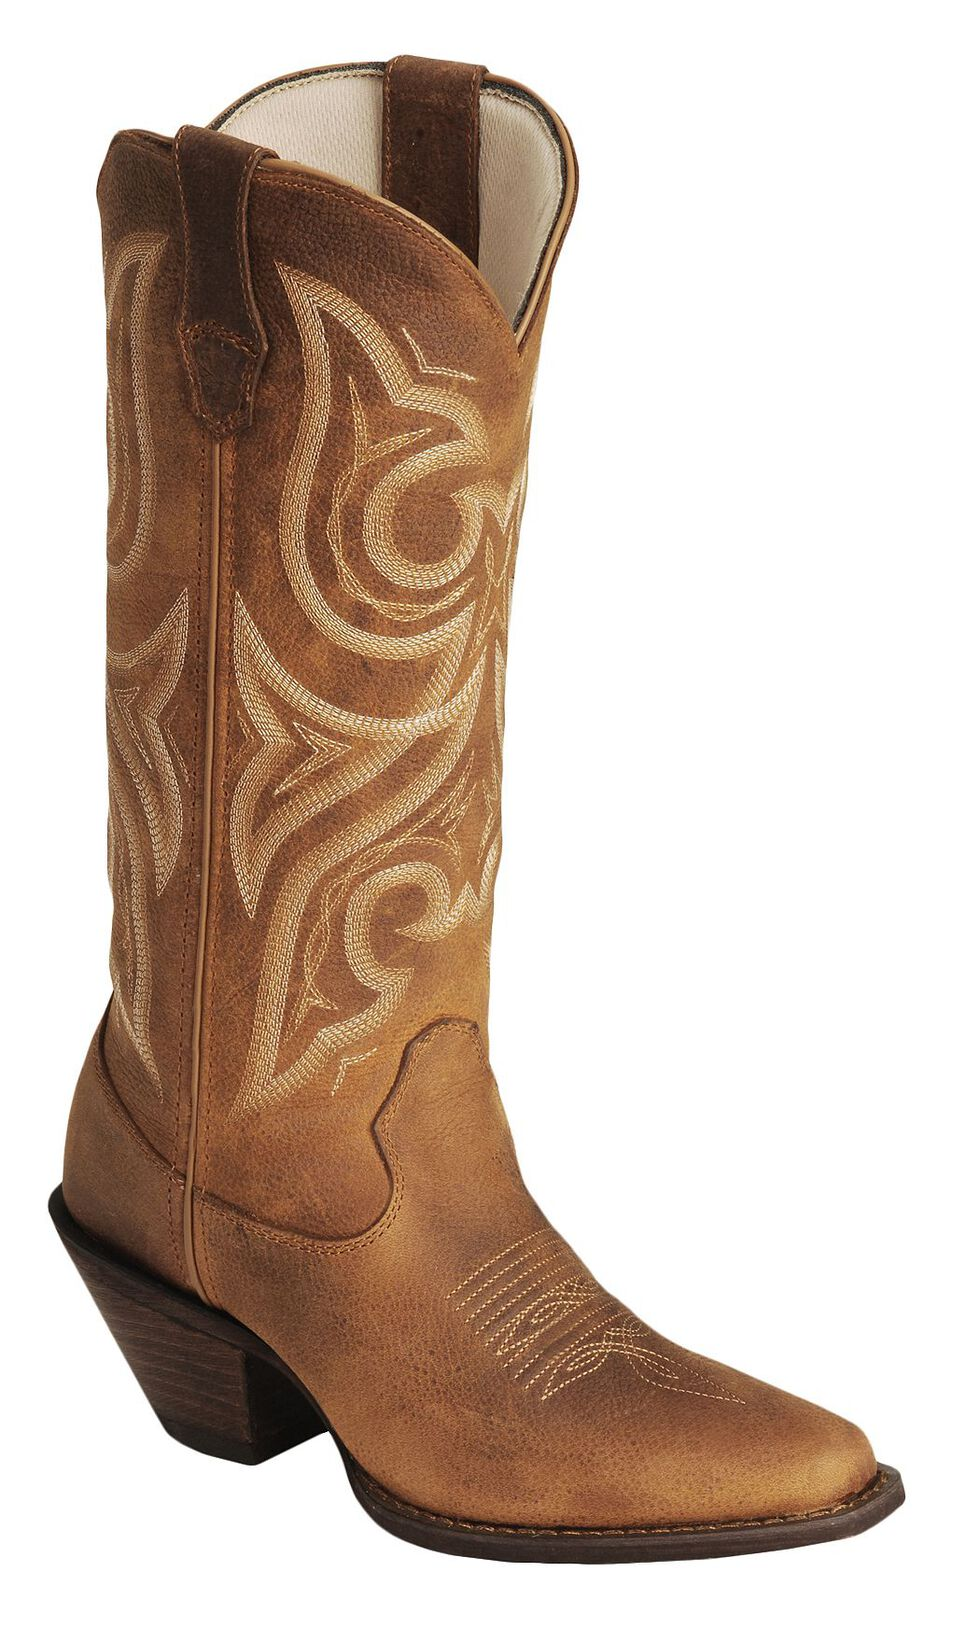 Crush by Durango Women's Jealousy Western Boots - Square Toe, Cognac, hi-res